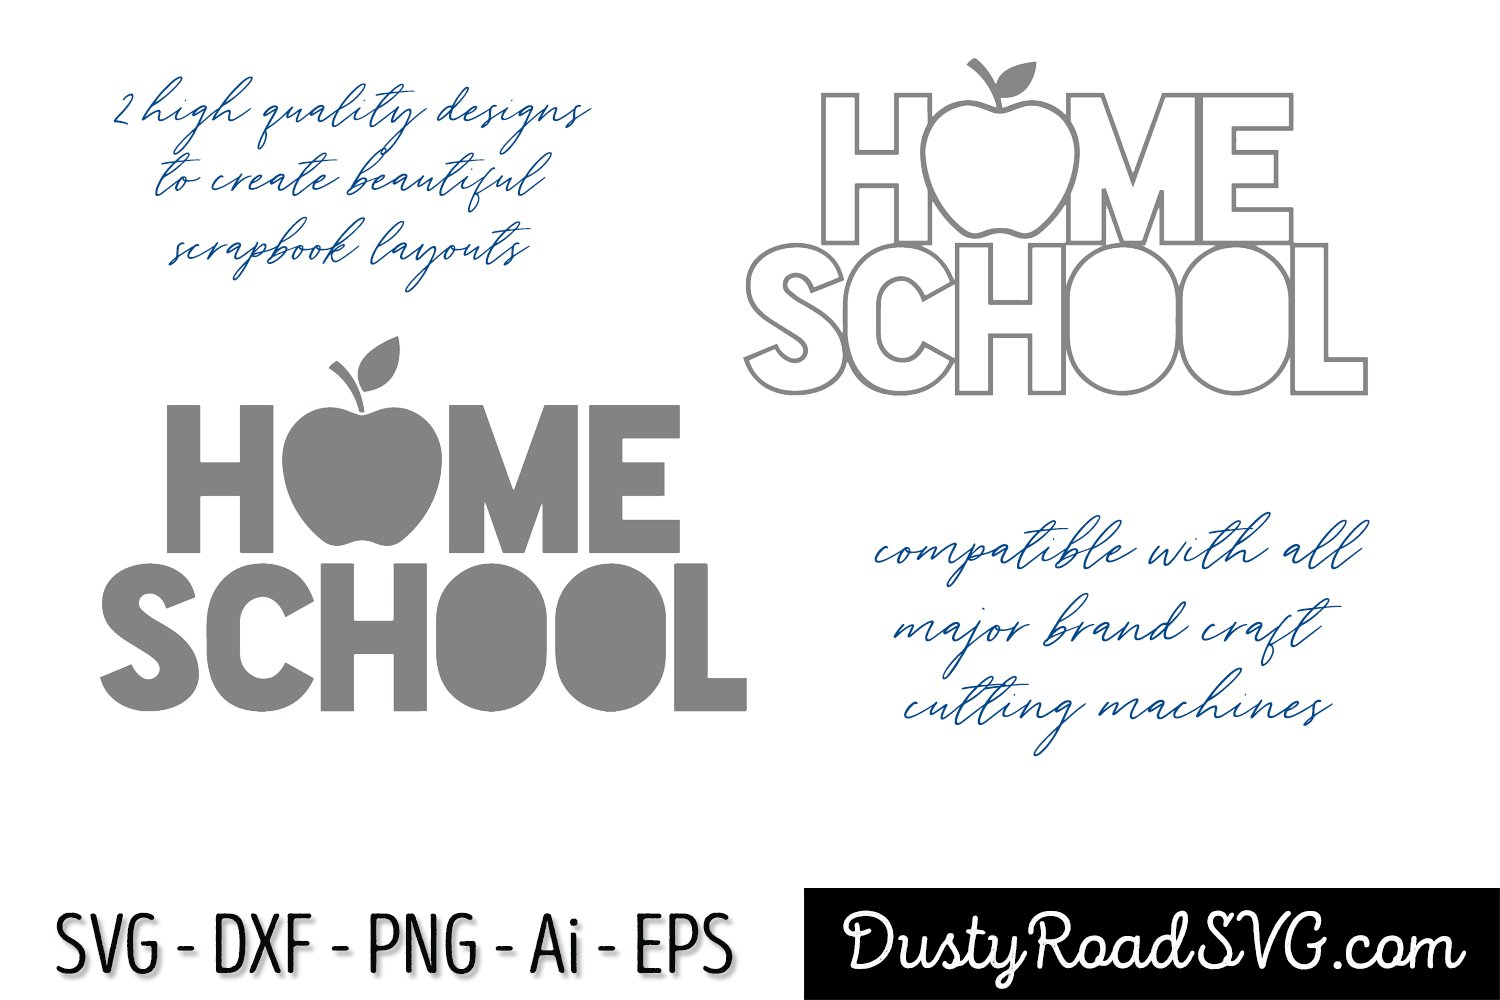 HOME SCHOOL - Scrapbook - cut file - svg png eps dxf example image 2